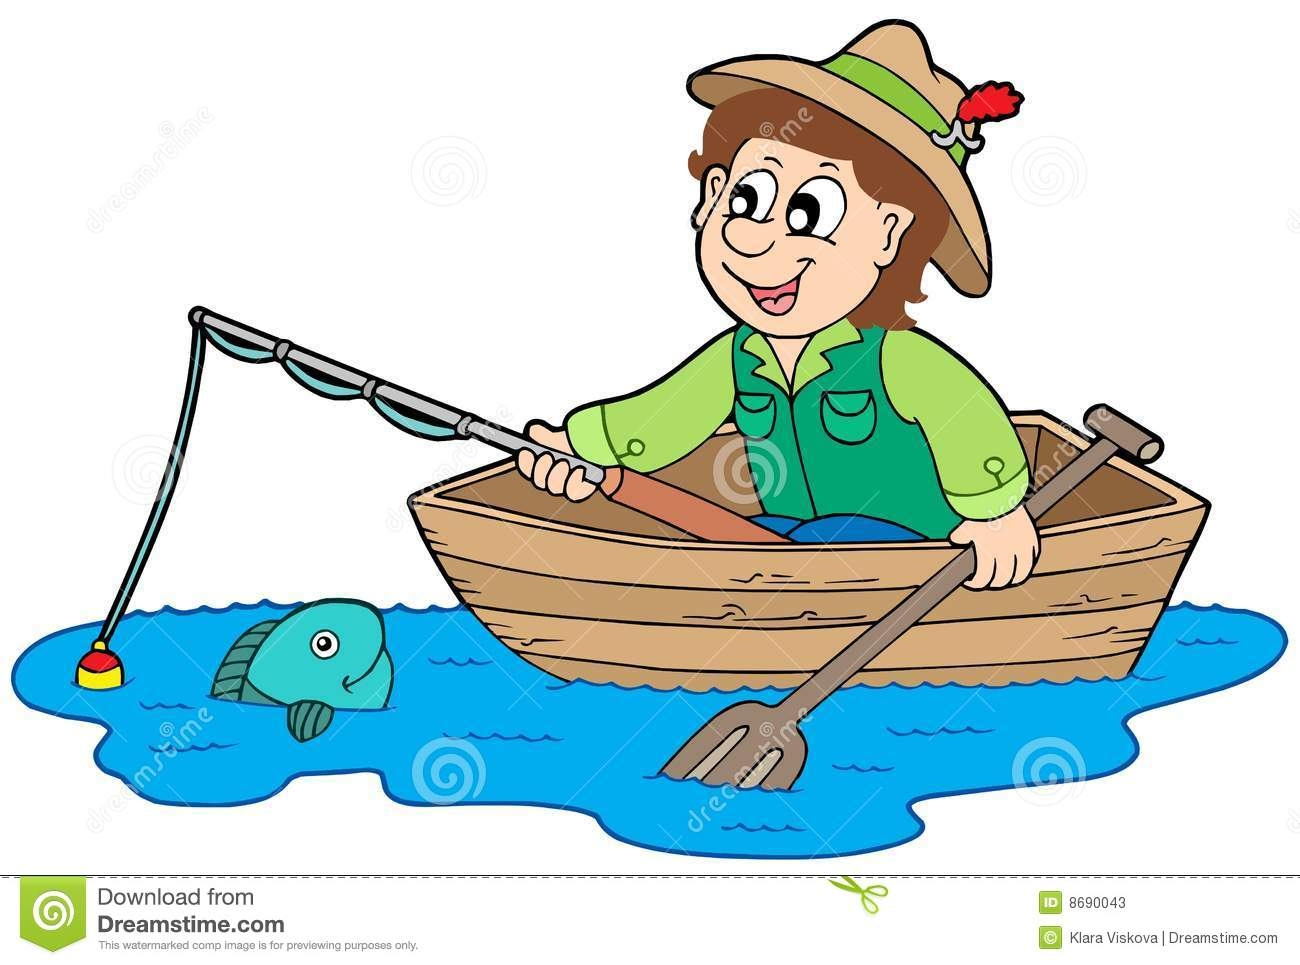 Fisherman clipart. Awesome gallery digital collection